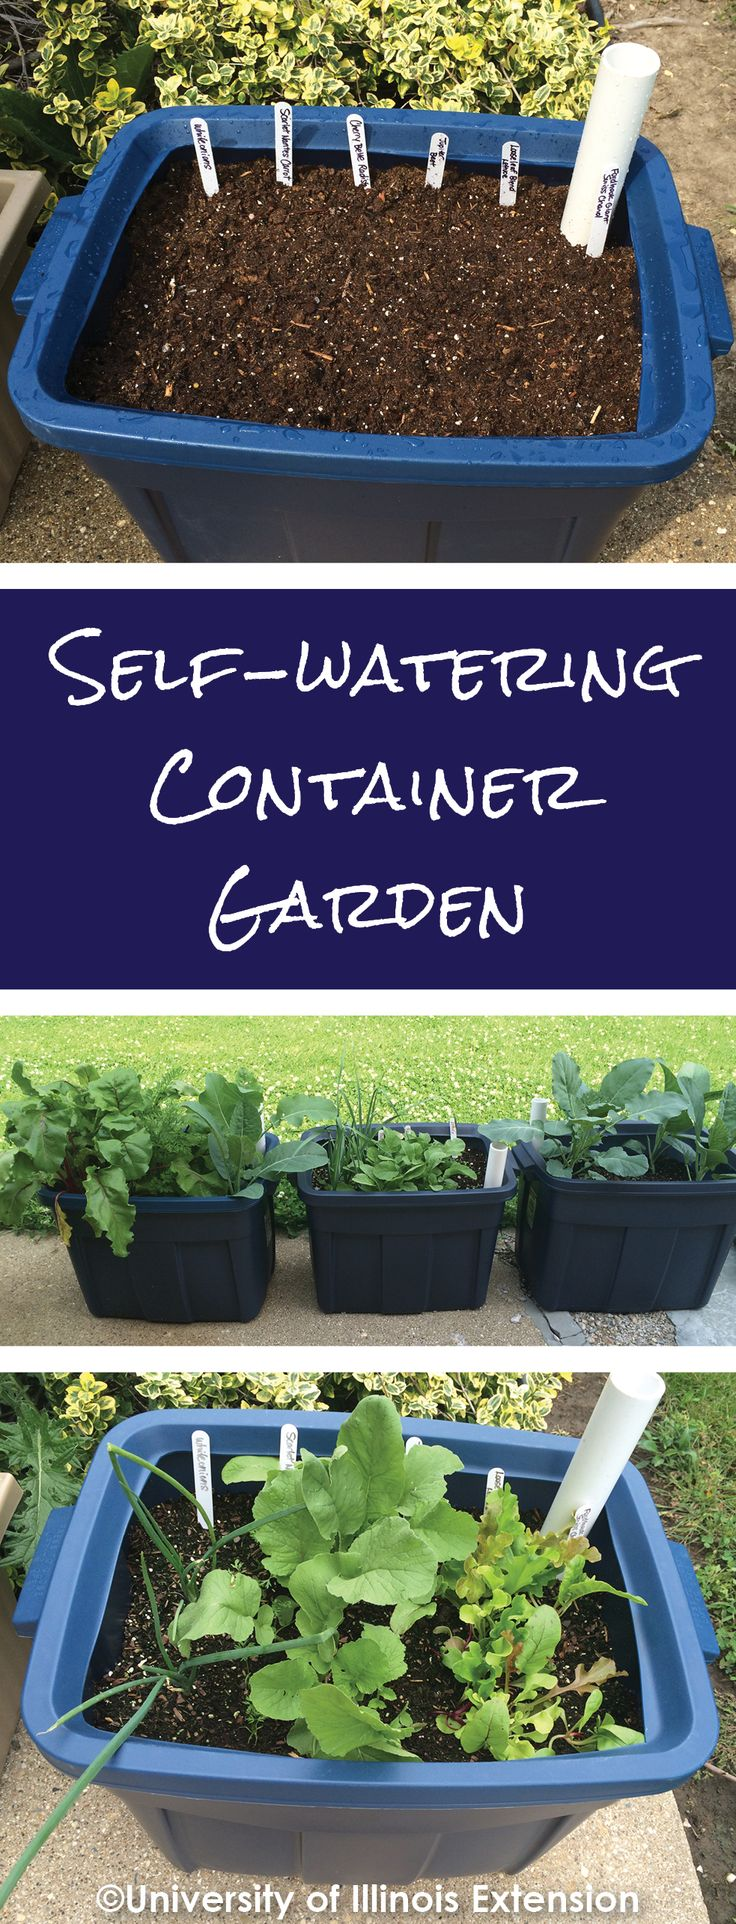 Want a garden but have zero space and no time for daily watering? Make one of these easy DIY self-watering containers and have beautiful flowers or fresh veggies year-round!  Learn more about container gardens at http://web.extension.illinois.edu/dmp/eb344/.